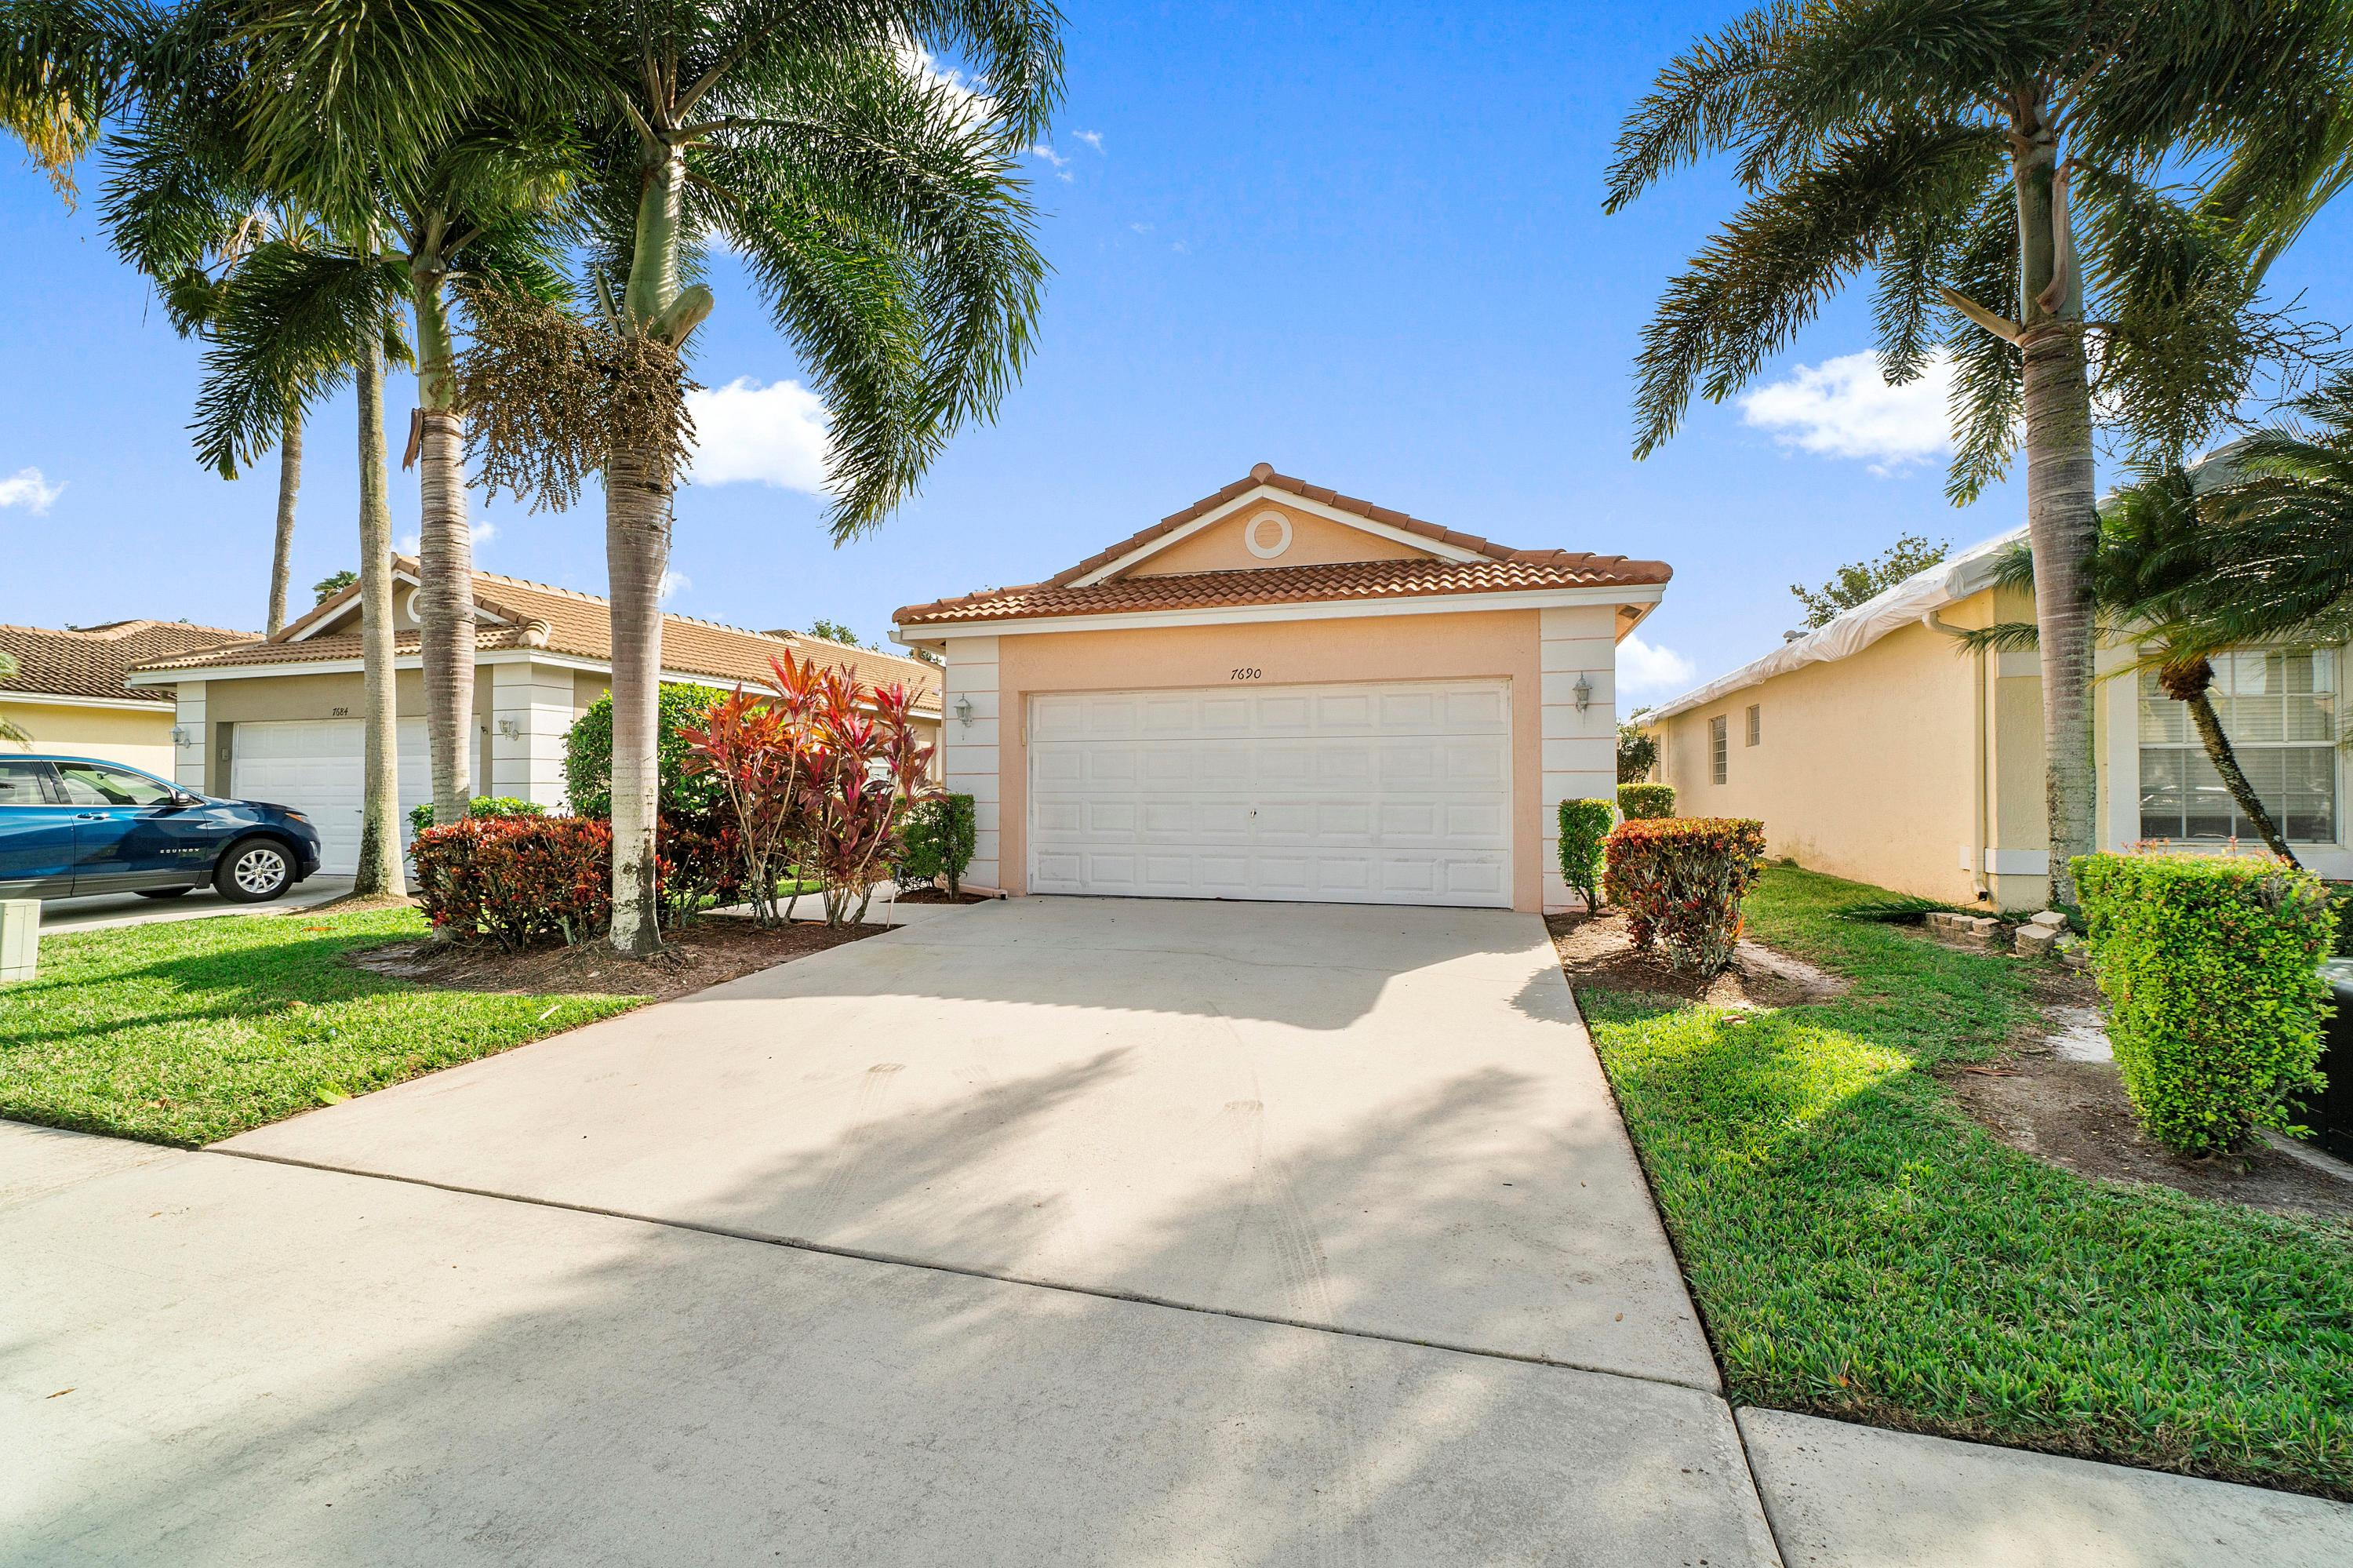 7690  Cherry Blossom Way  For Sale 10683159, FL